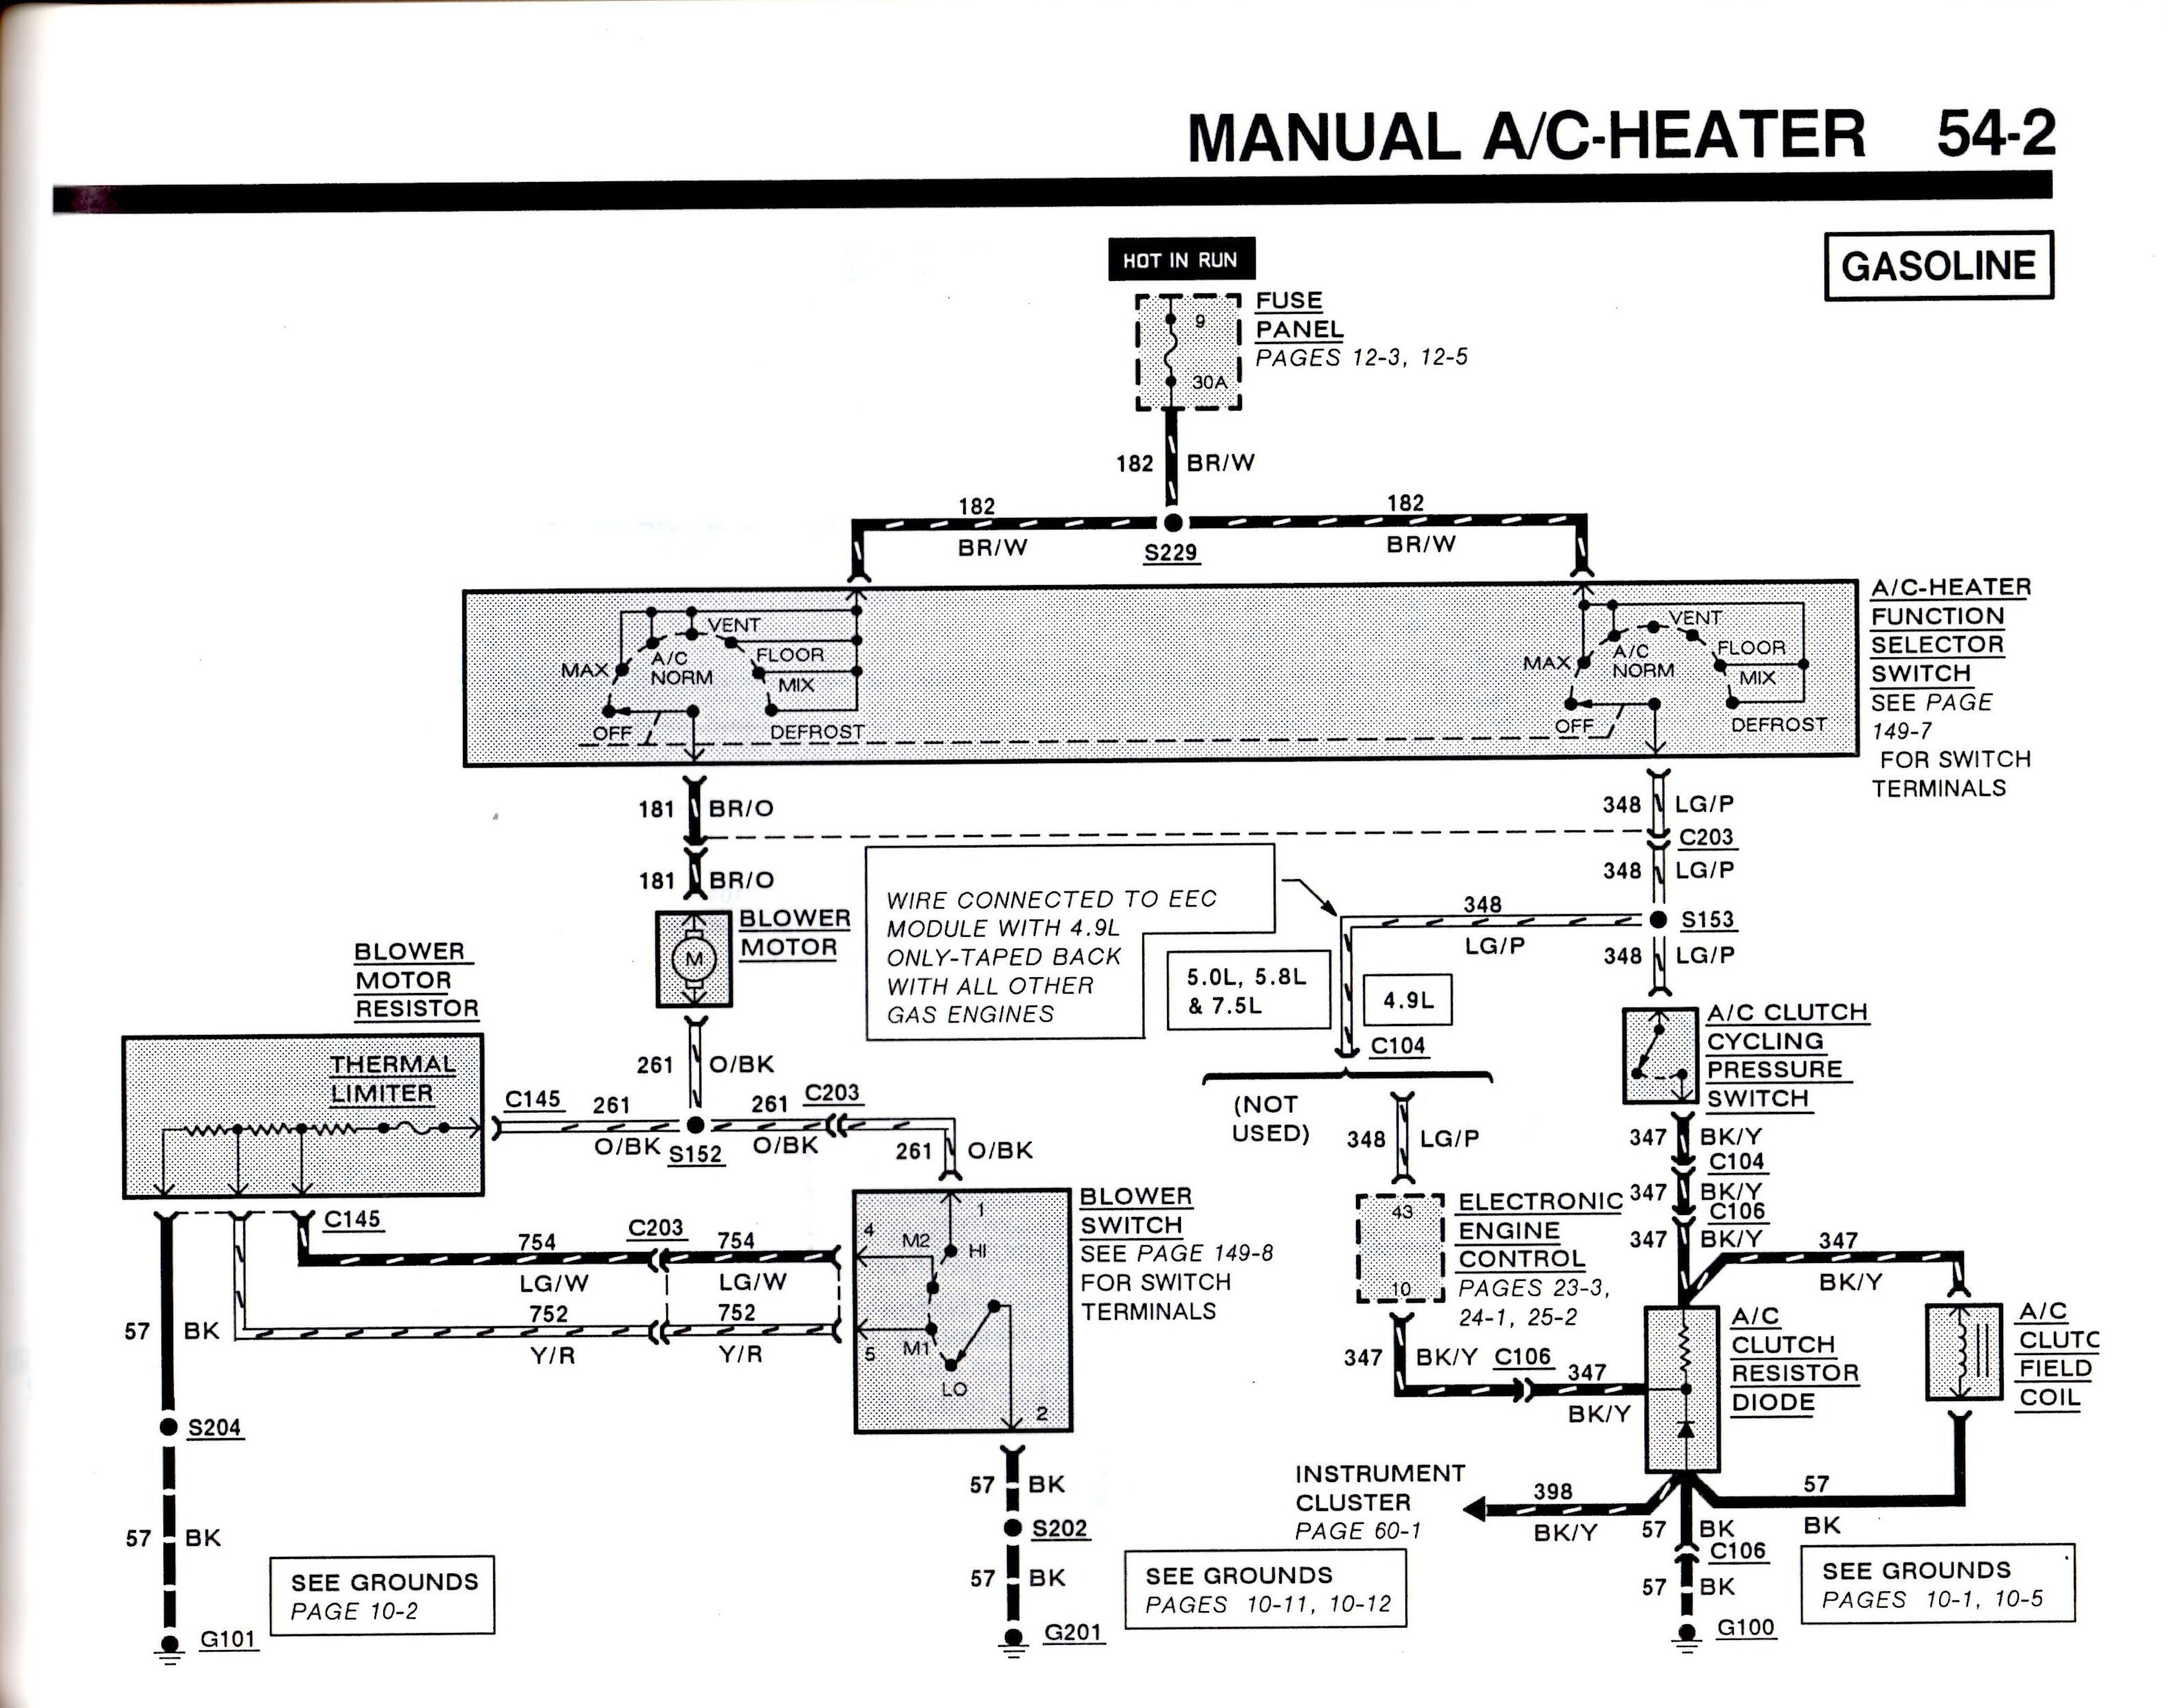 Magnificent 72 Vega Wiring Diagram Pictures Inspiration - Electrical ...